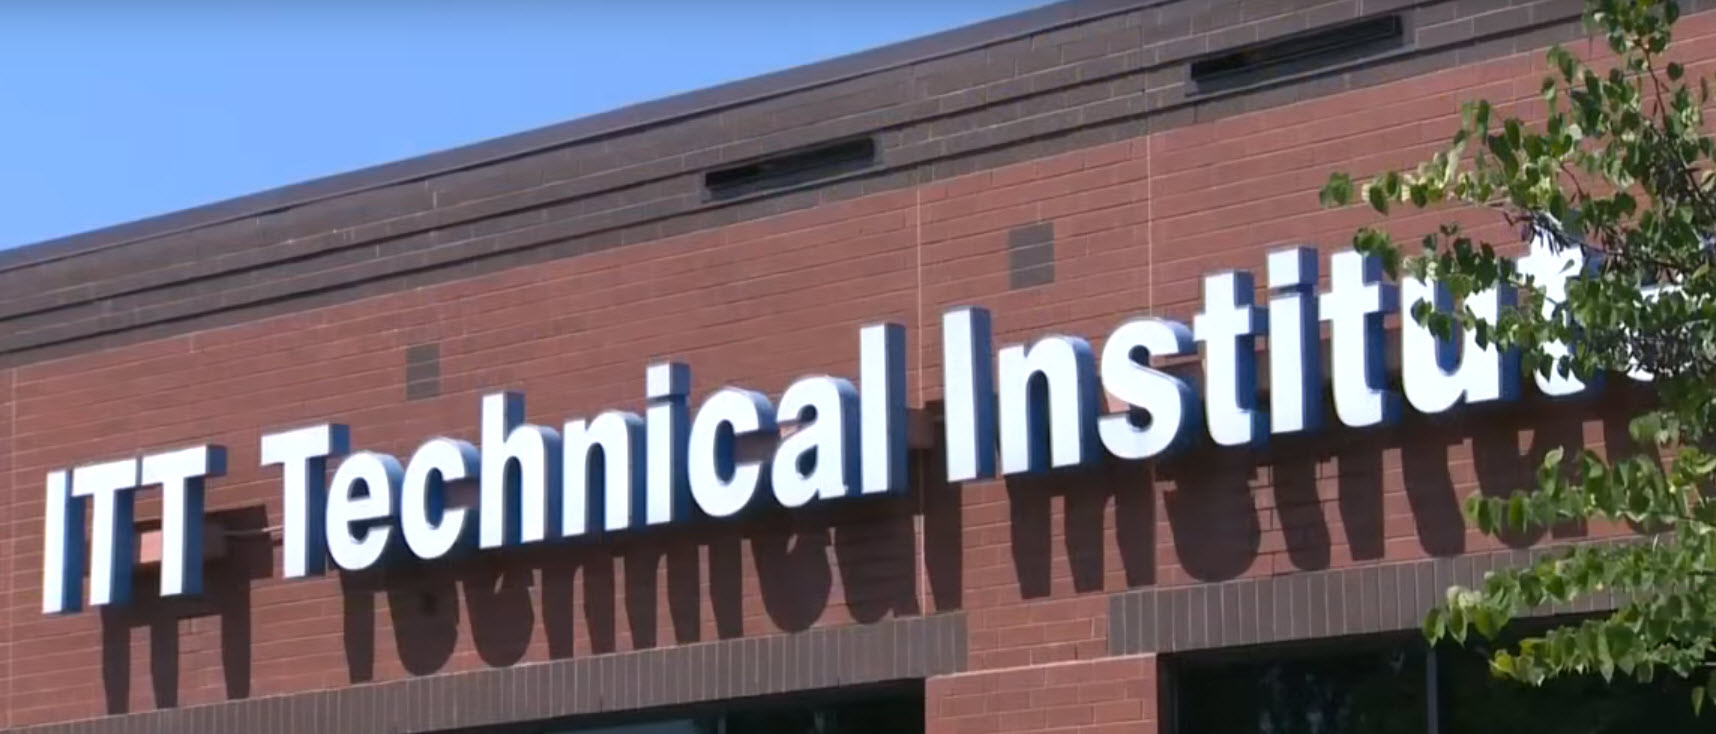 ITT TECHNICAL SCHOOL CLOSING PART II - A SYMPTOM OF A GREATER DISEASE